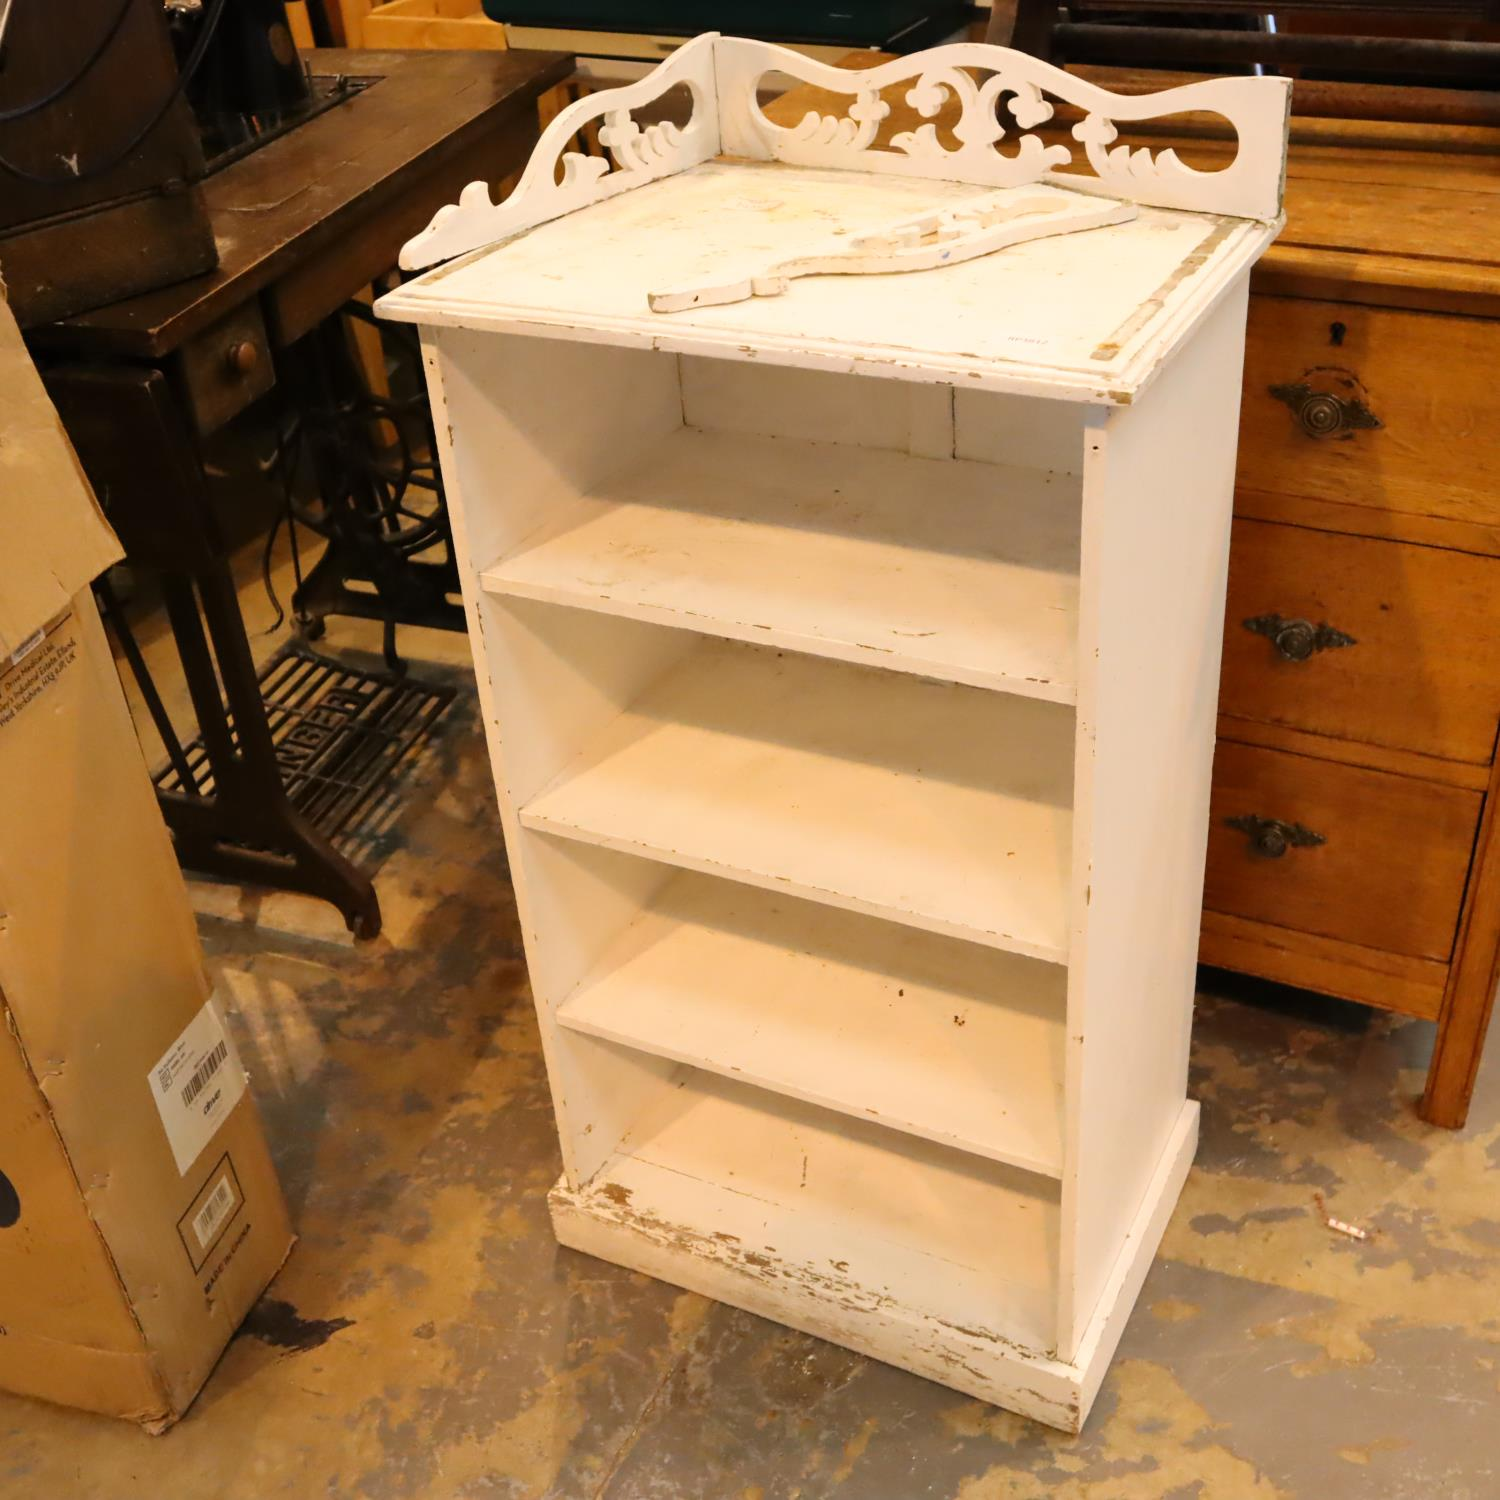 French shabby chic shelves with pierced gallery. Not available for in-house P&P, contact Paul O'